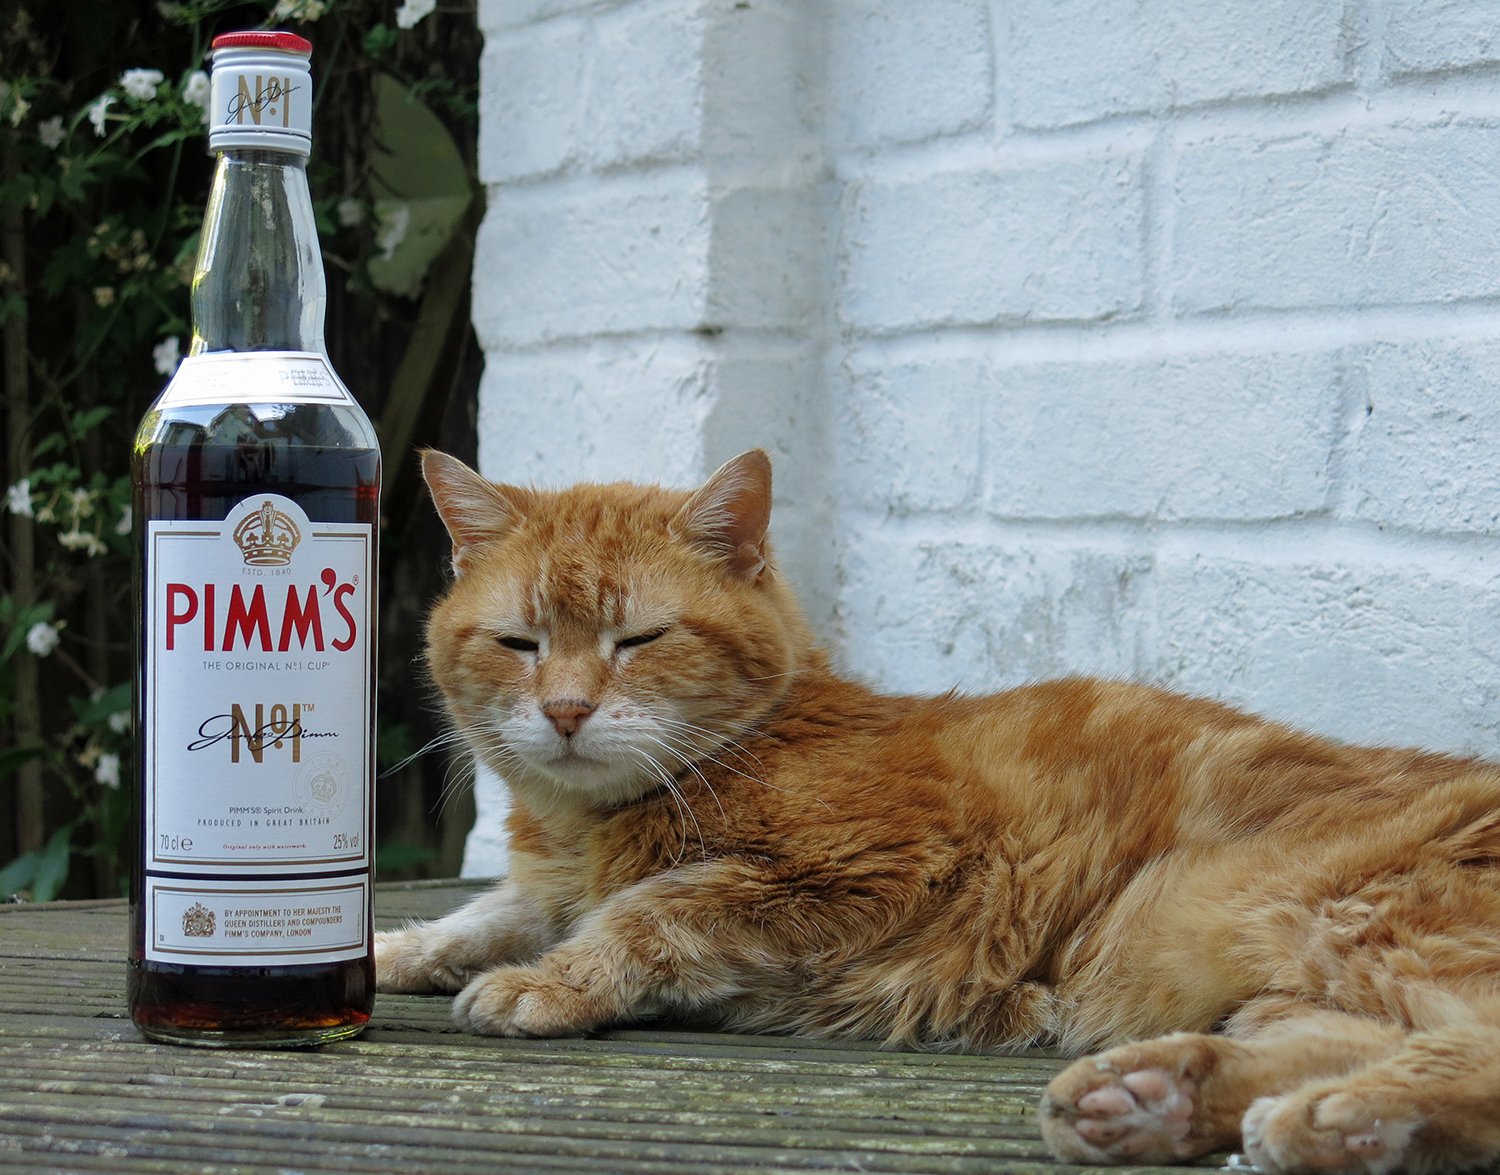 Pimms and the Cat